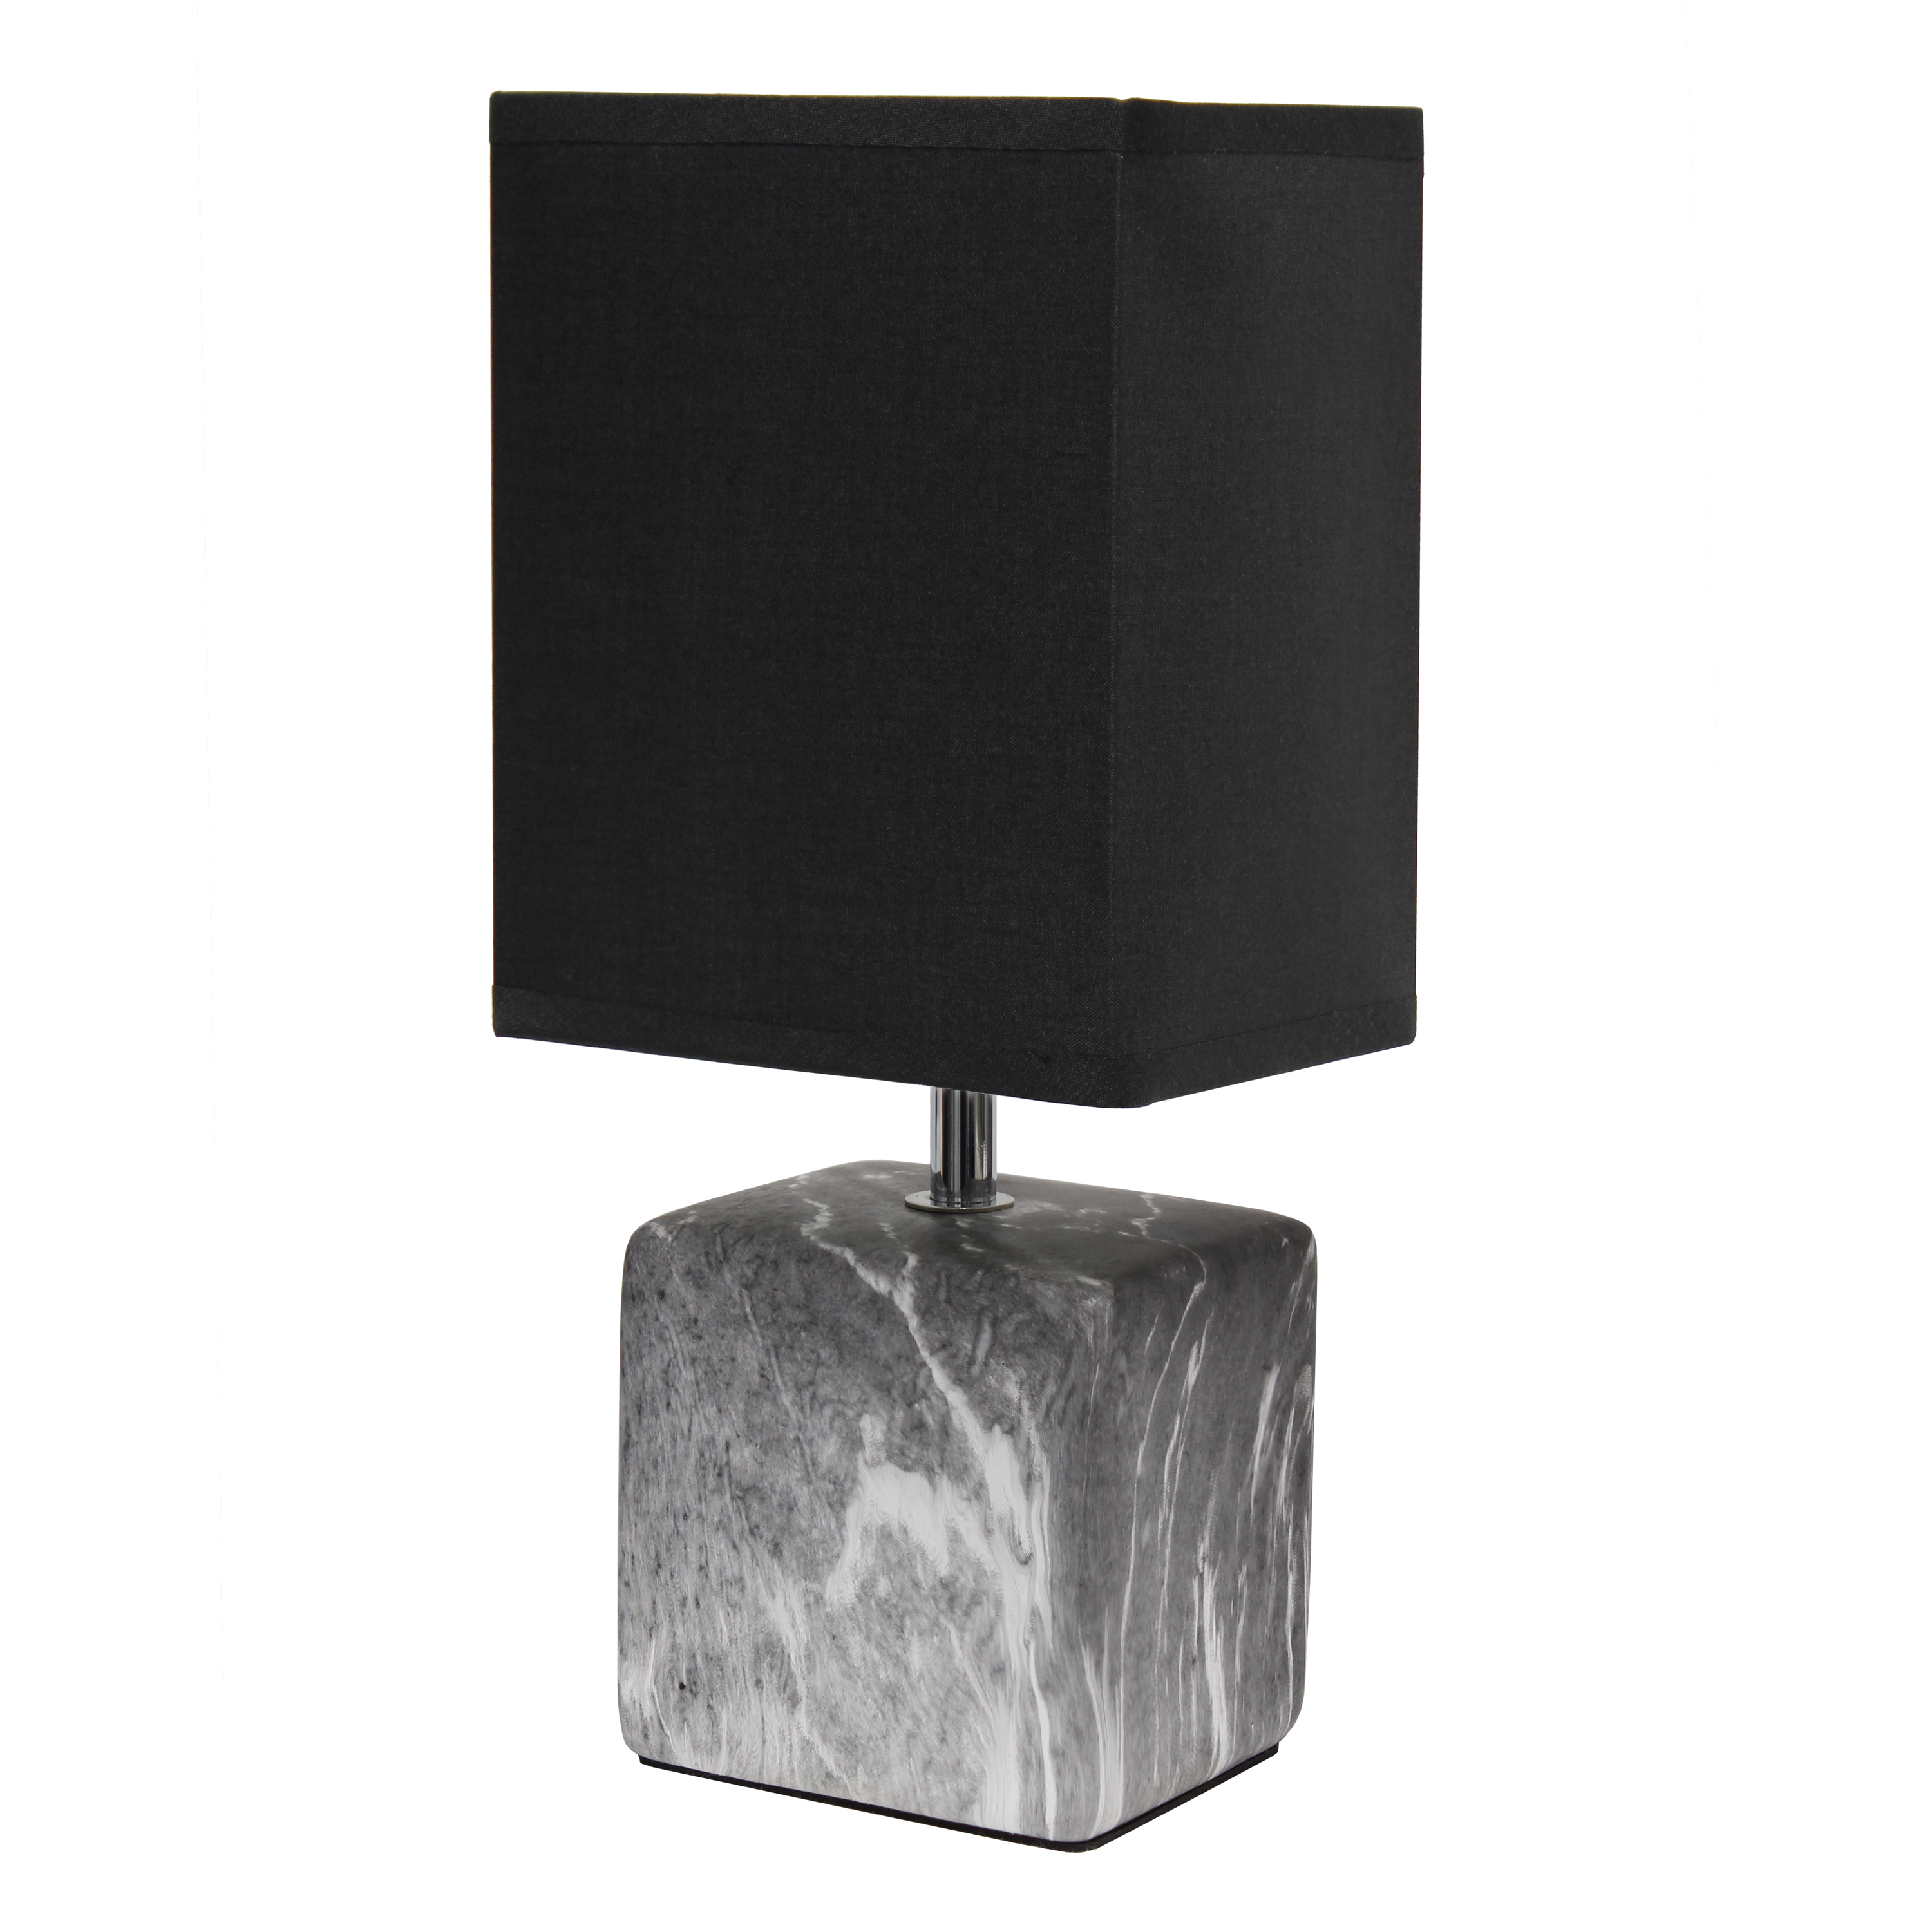 Simple Designs Petite Marbled Ceramic Table Lamp with Fabric Shade, Black with Black Shade